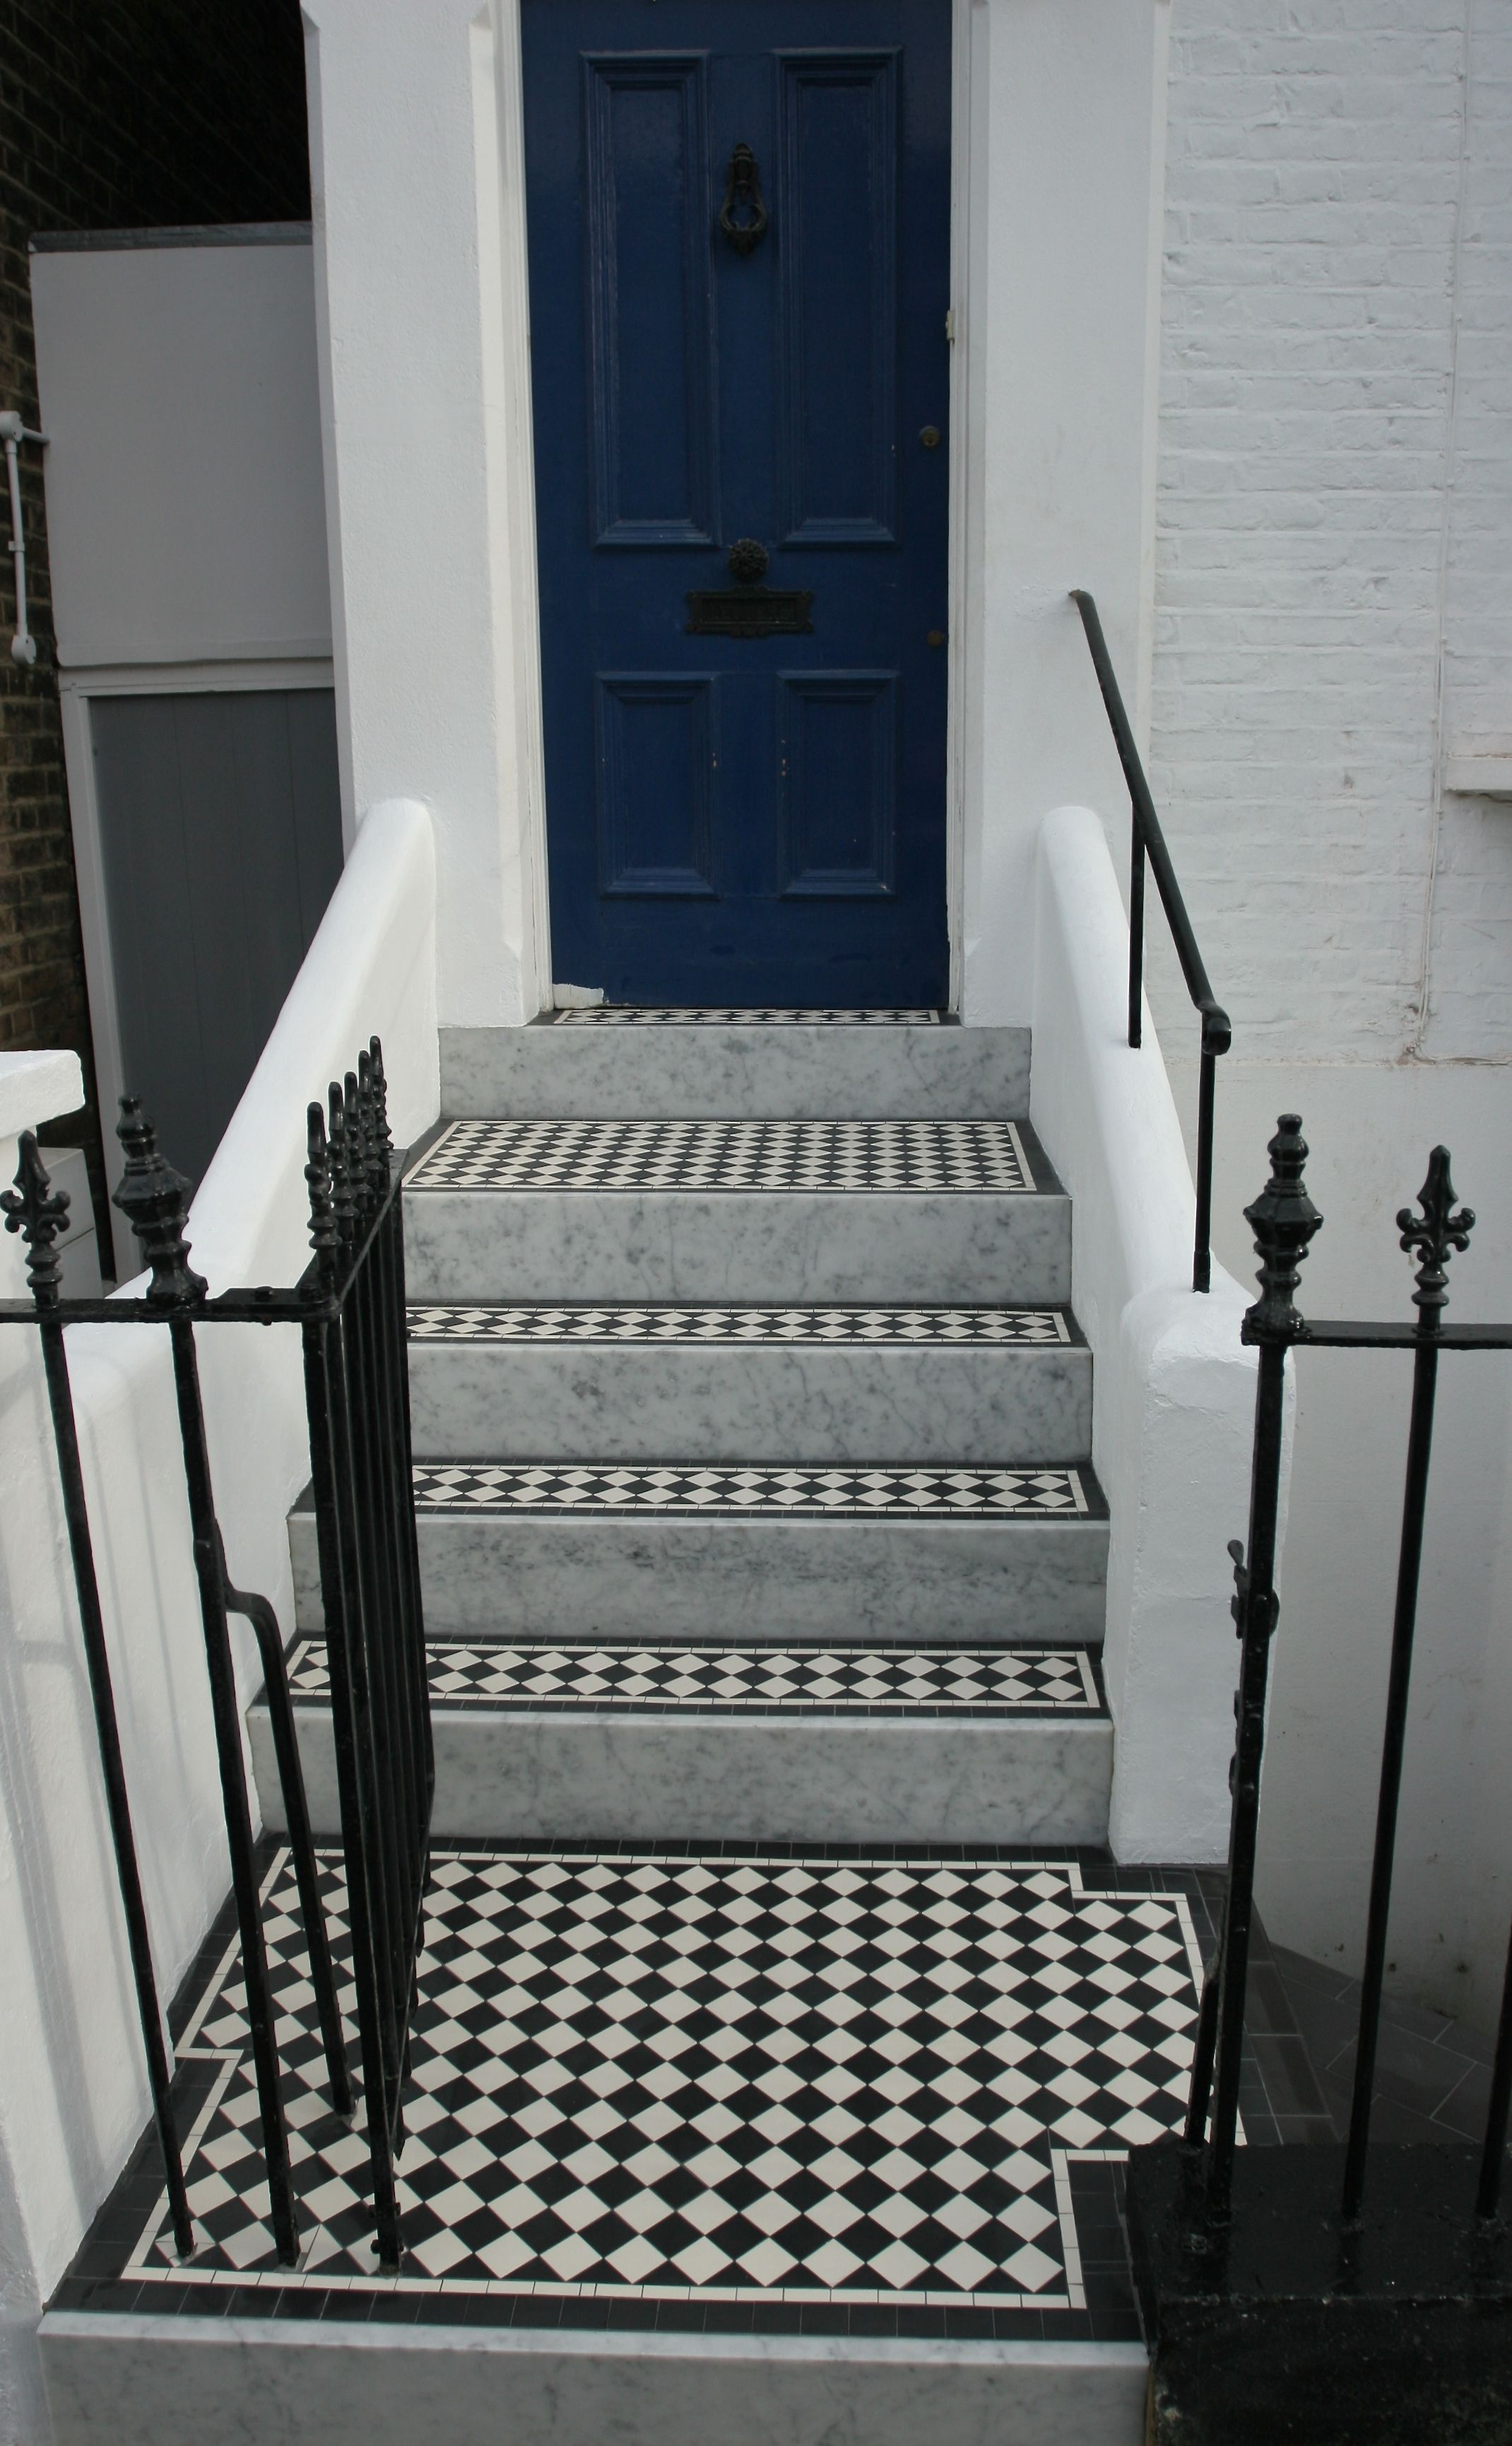 New Victorian Mosaic Floor Tiles For Steps And Pathway In Putney London Sw15 Sheeted 5cm Mosaics From Www M Victorian Front Garden Victorian Porch Tile Steps